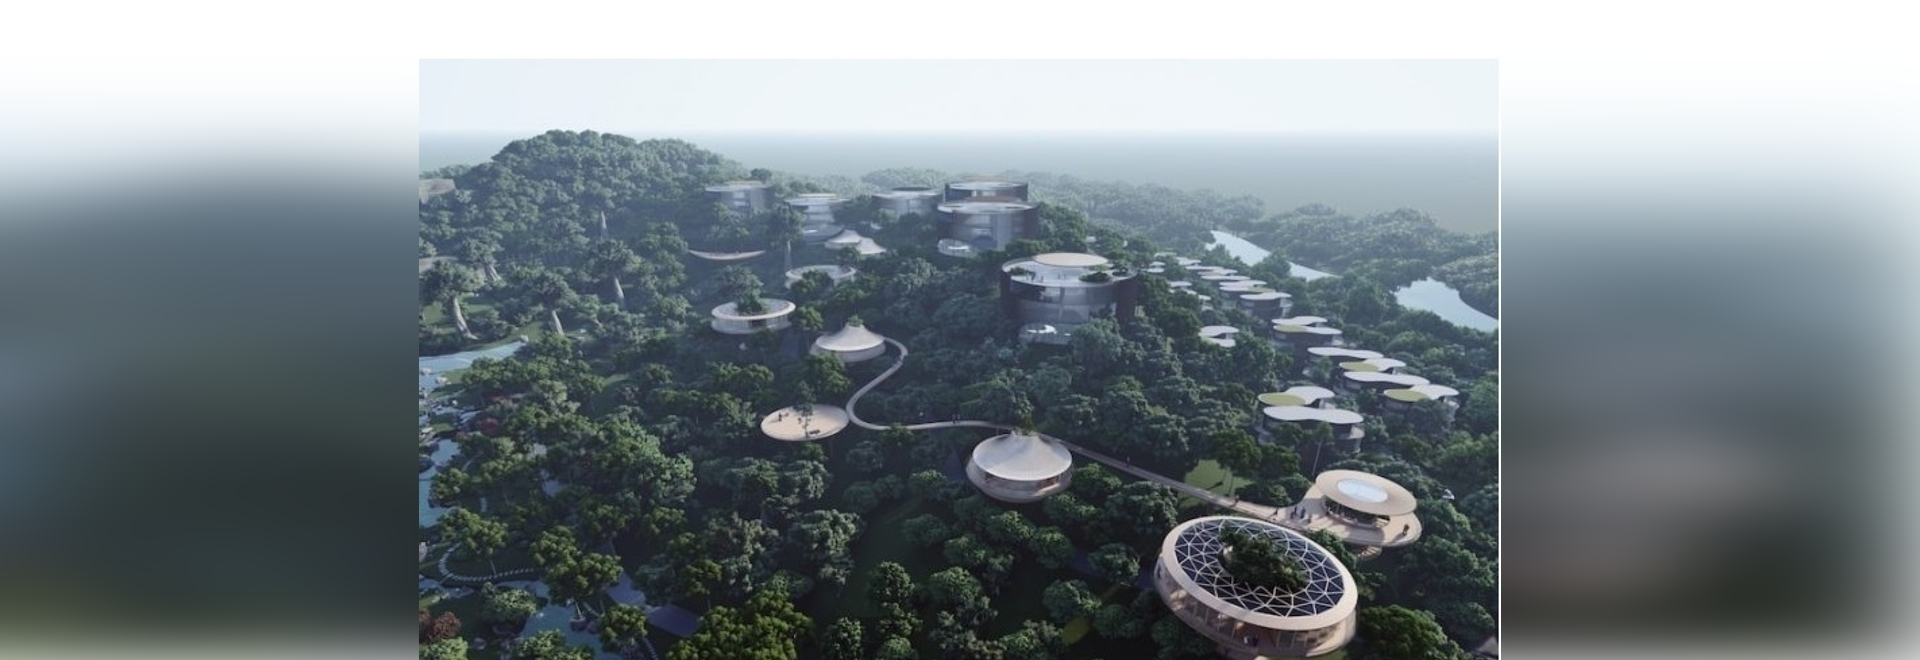 'Tales from the loop' is a cluster of scattered gateways amid an ancient chinese woodland area